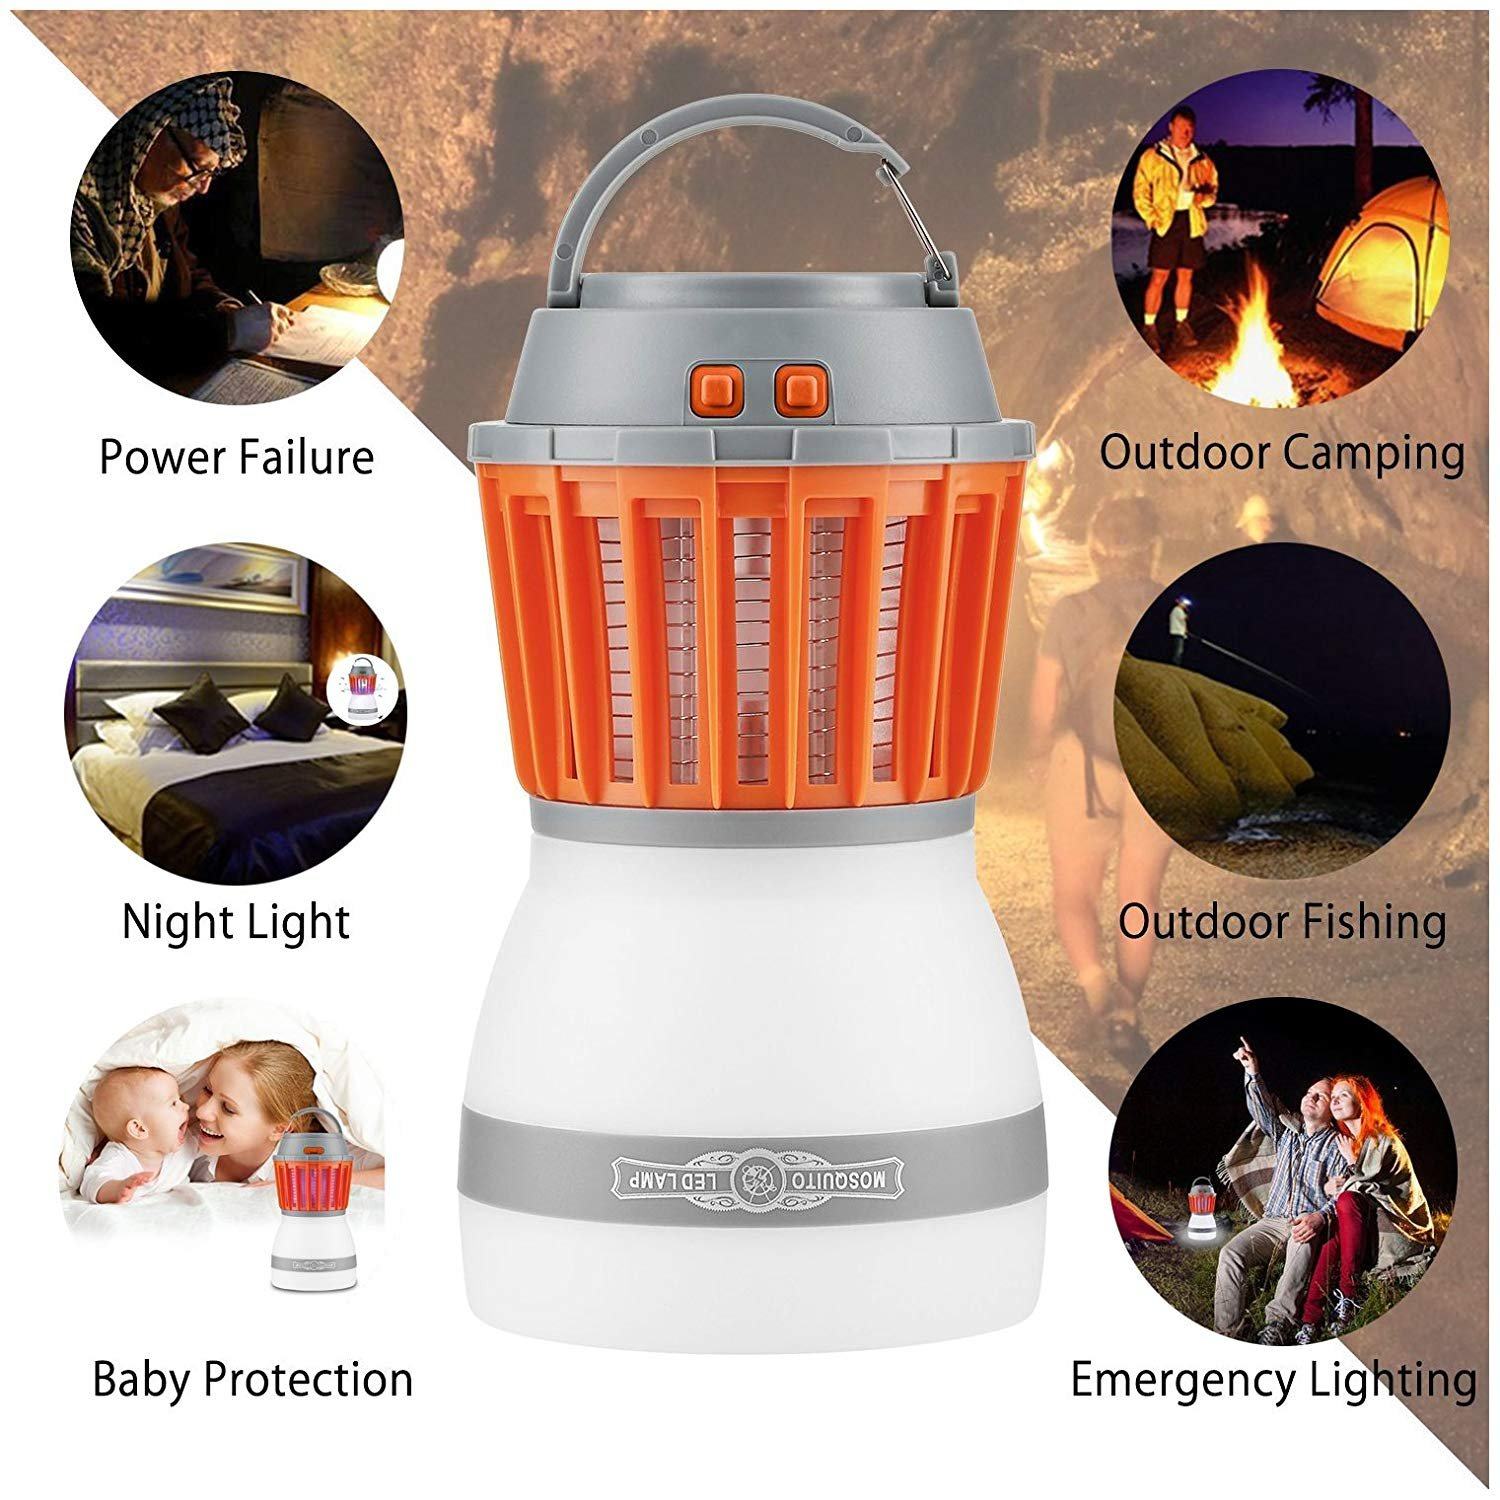 Fellee Bug Zapper, 2-in-1 Mosquito Killer & Camping Lamp Natural Mosquito Killer Lamp Travel Camping Lantern Pest Control USB IP67 Waterproof Insect Repeller for Indoor &Outdoor by Fellee (Image #6)